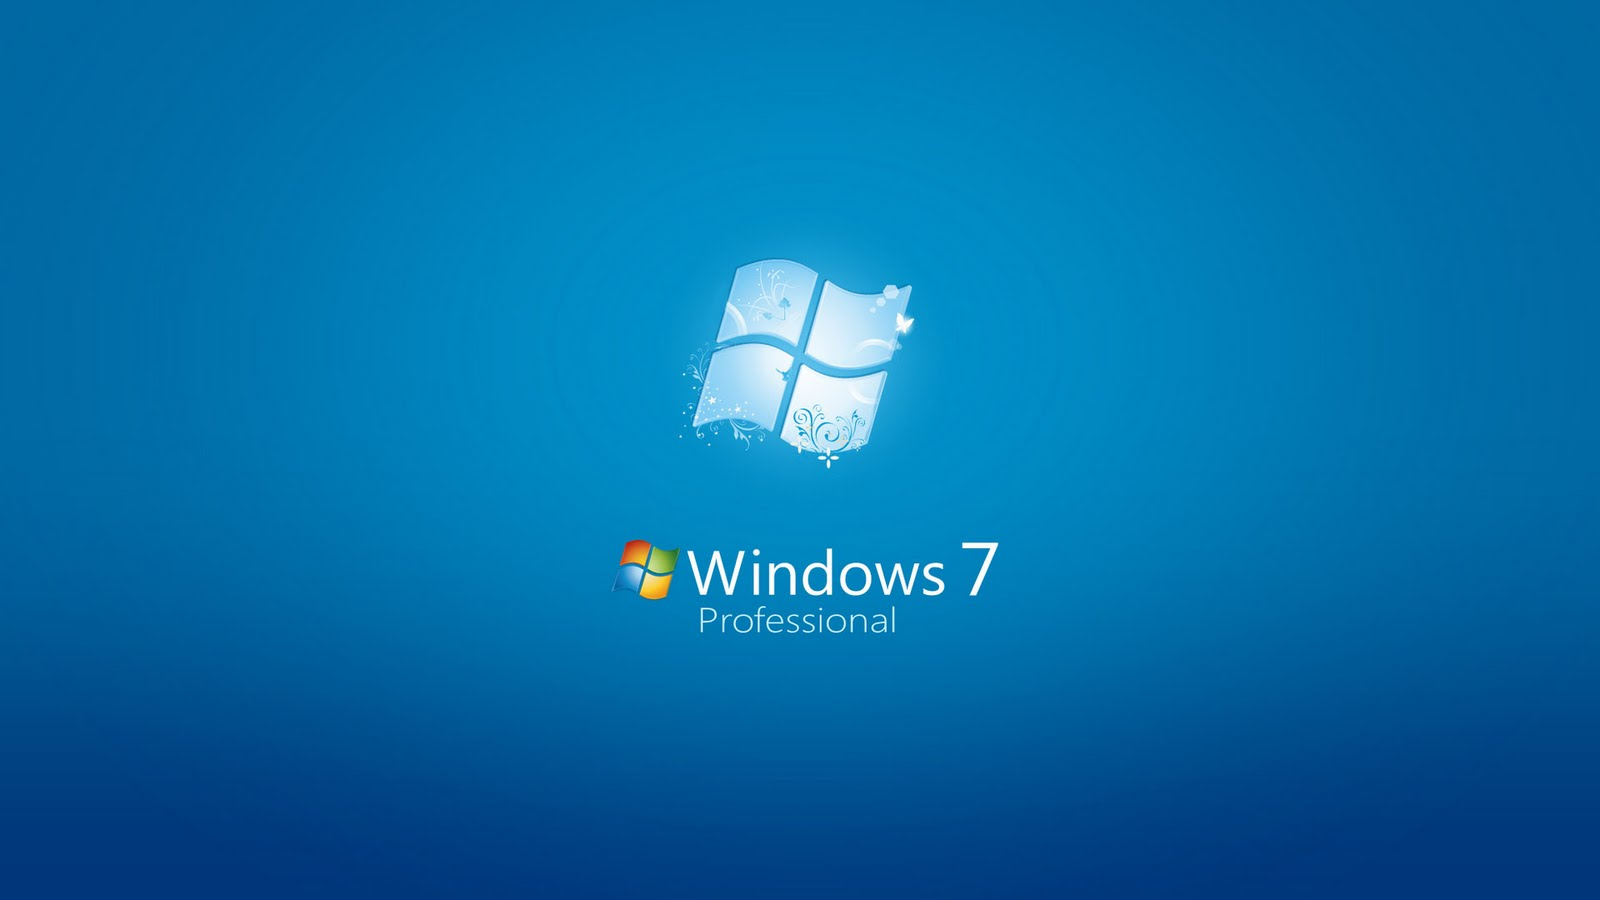 Microsoft windows 7 professional home premium direct for Microsoft windows